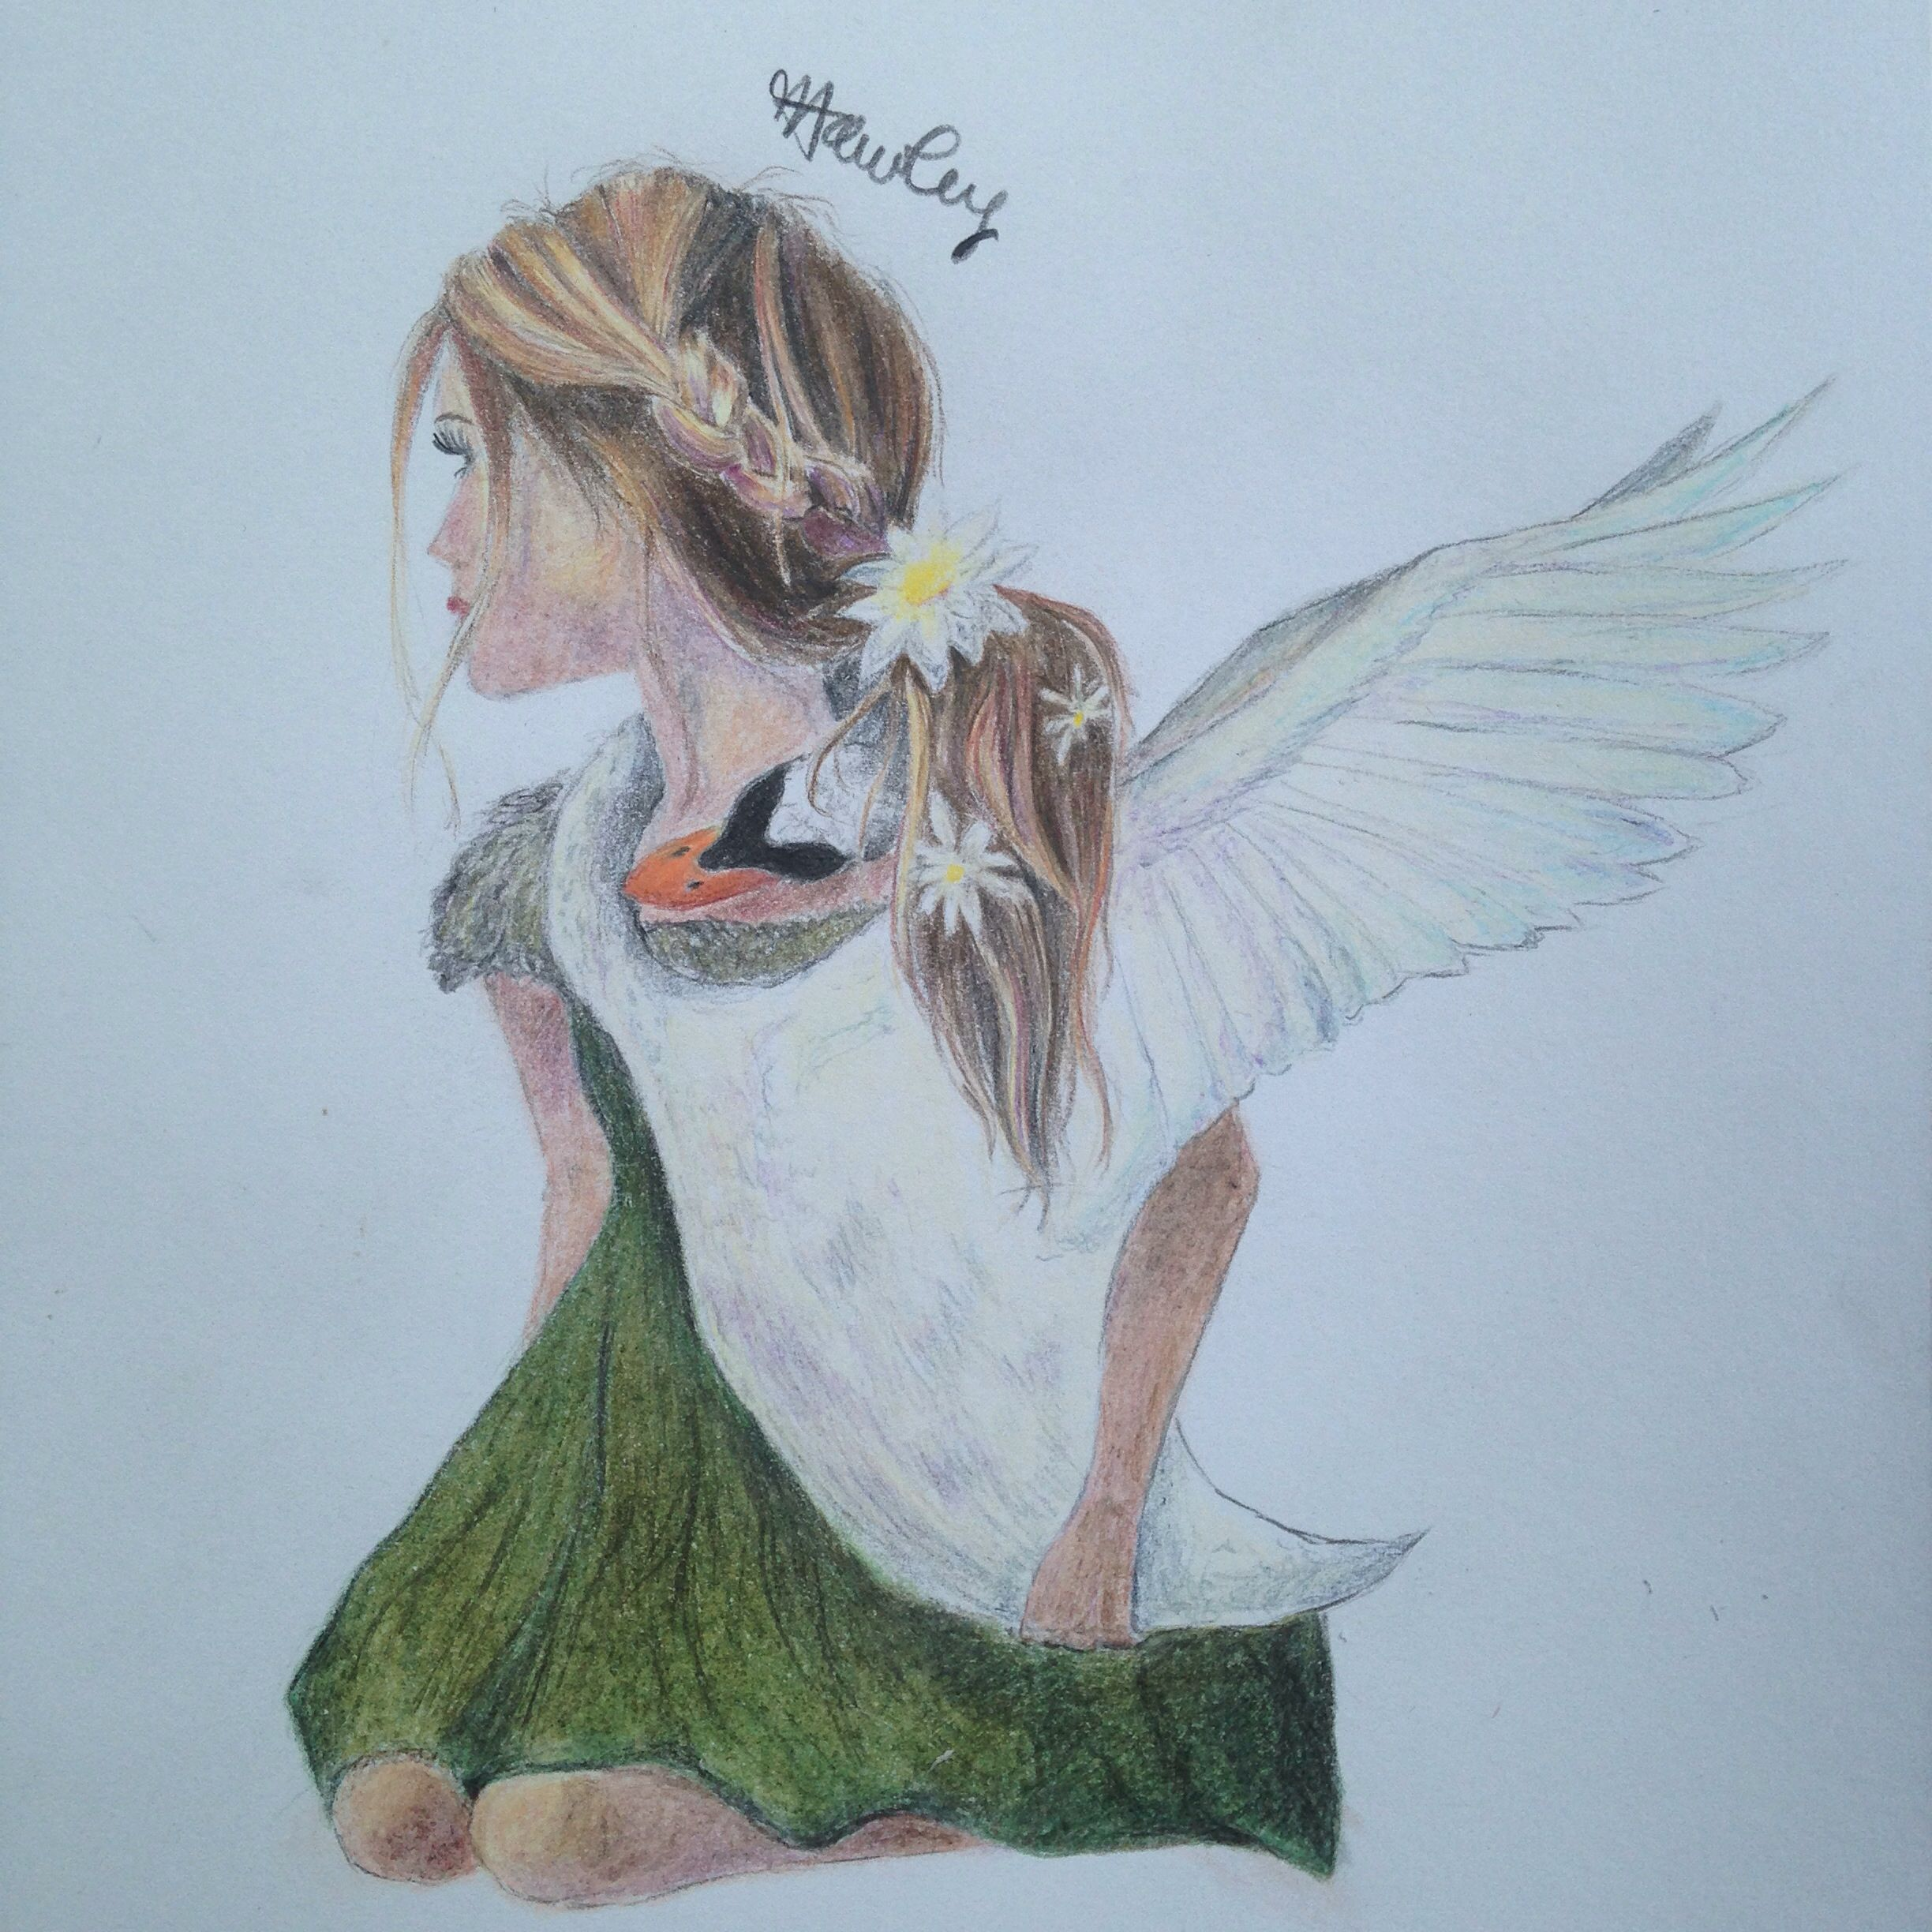 One of my first original drawings. A girl with a swan. I'm not sure what I was trying to create it just came to me. I like to think the girl is wishing she could fly and has asked the swan to help her, and by latching on has almost become a part of her. I hope to do more like this in the future.